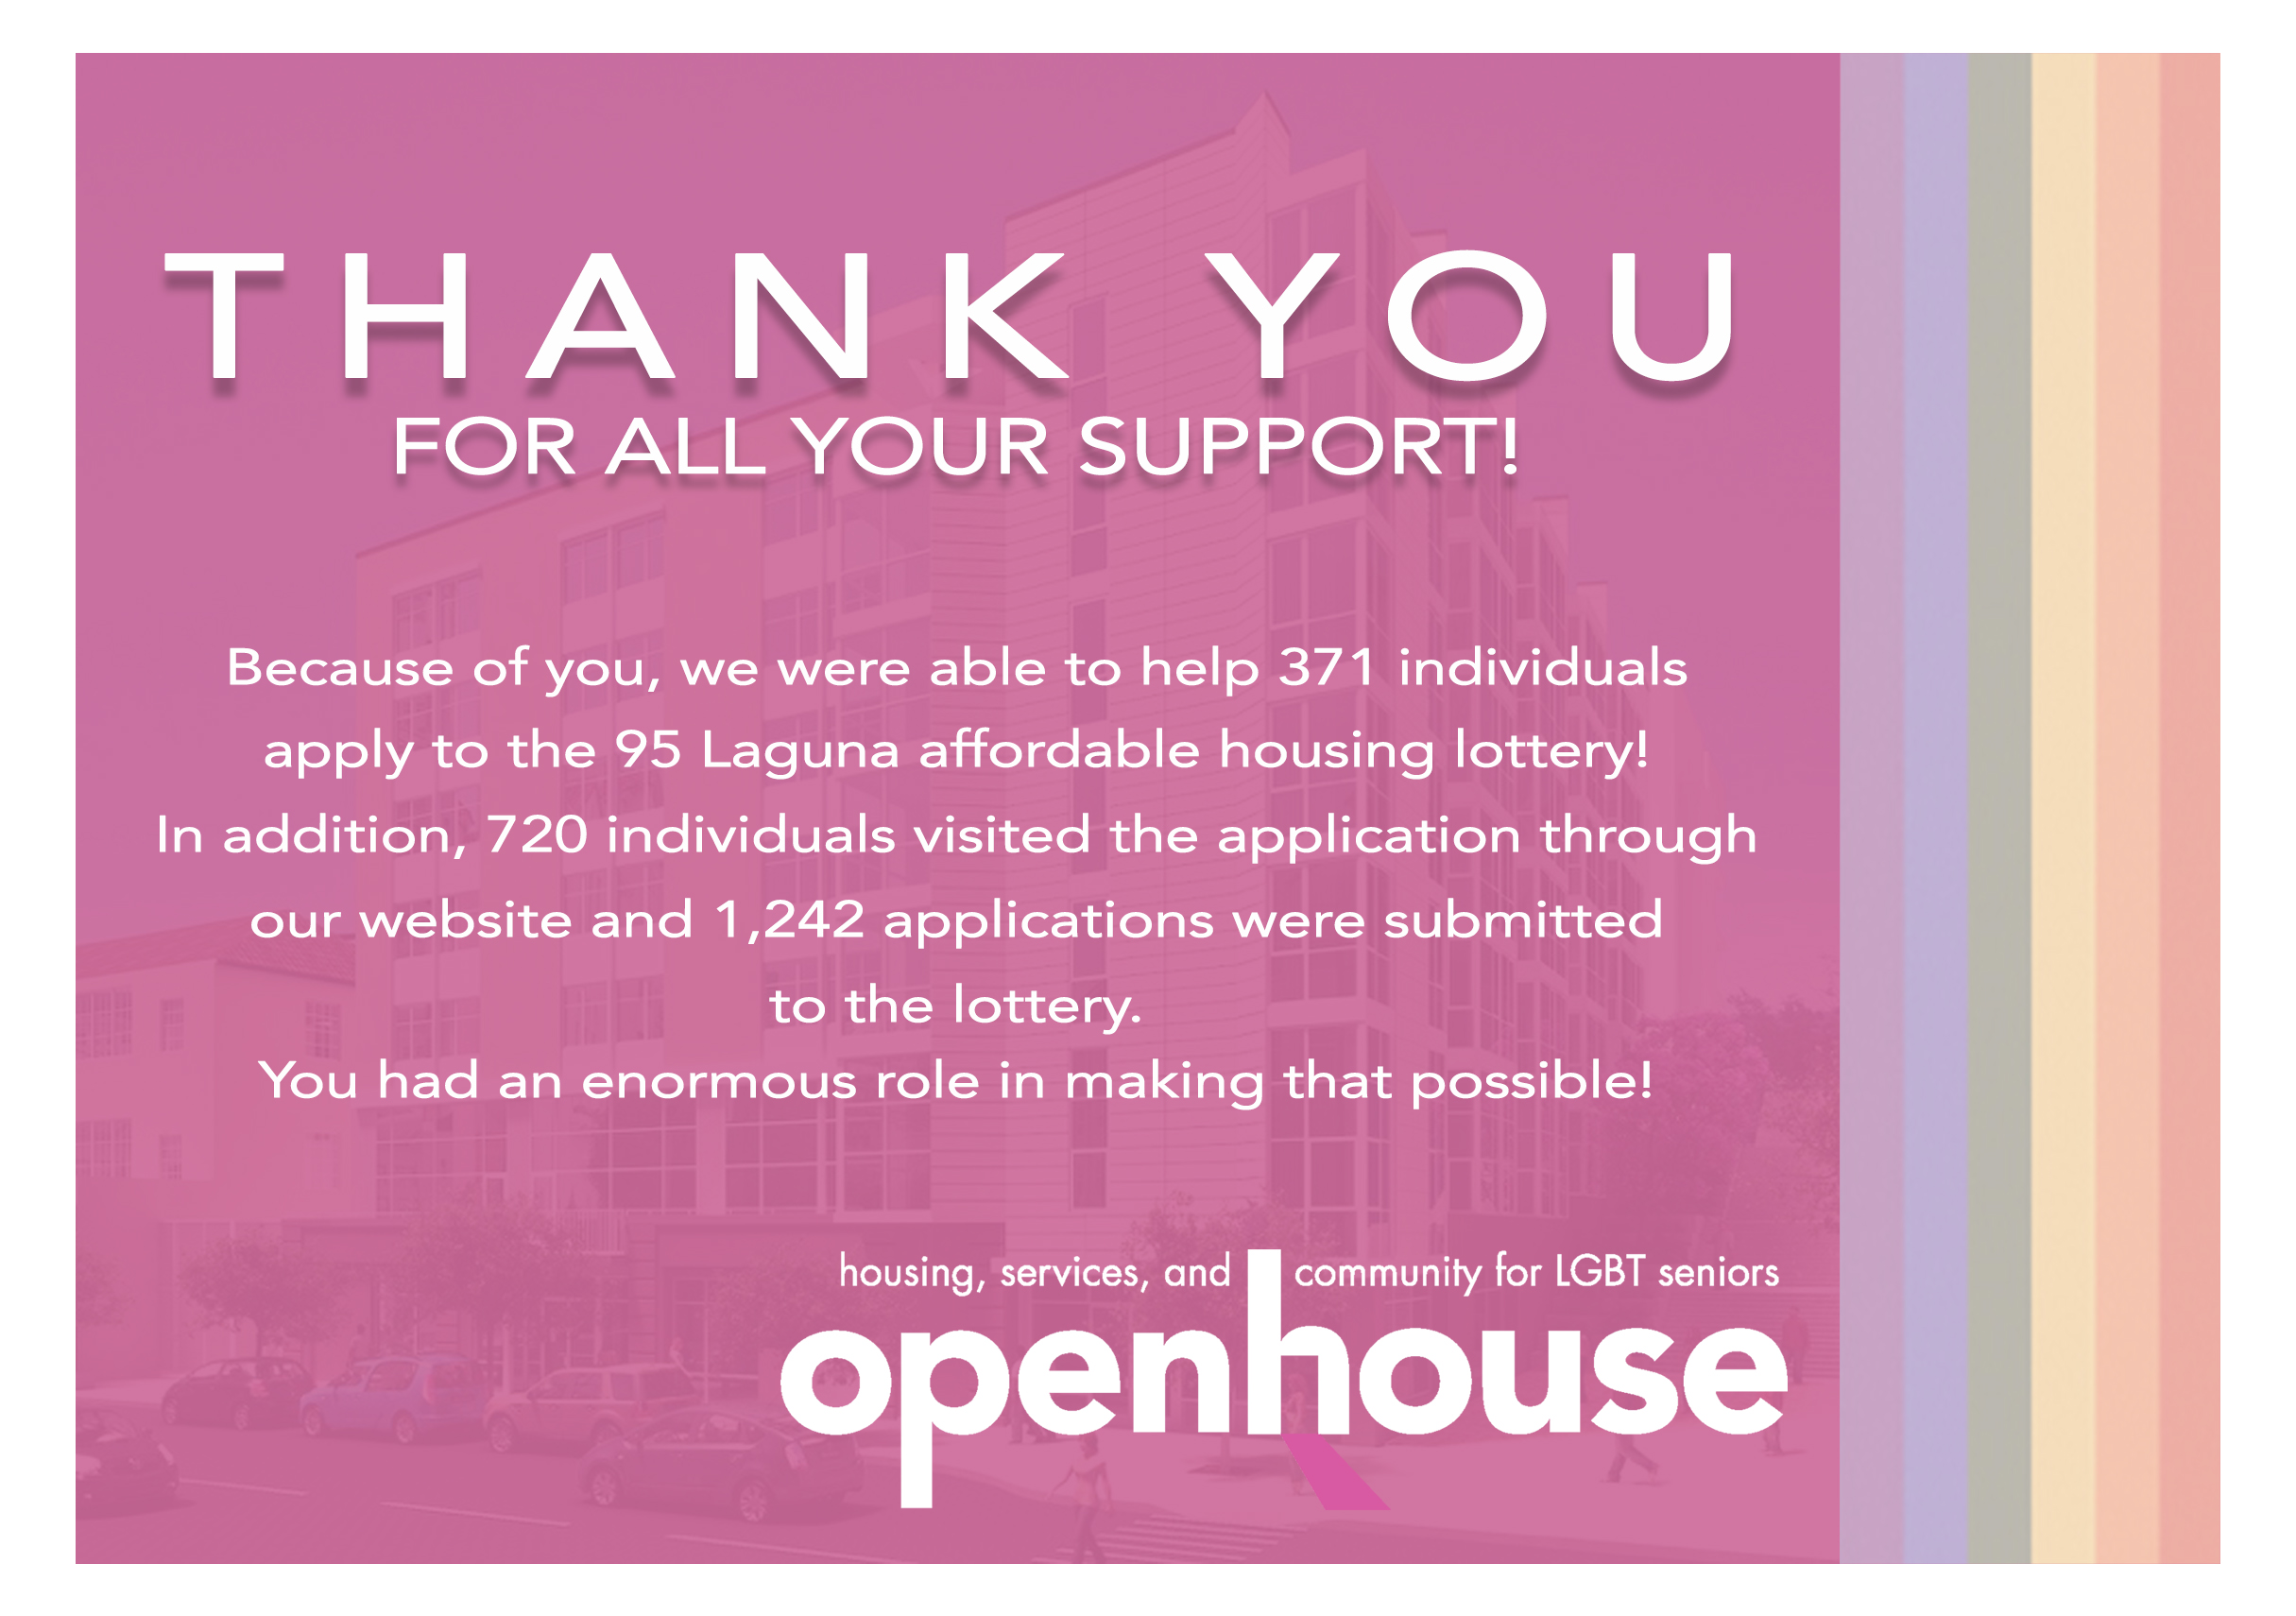 Thank you card I designed for volunteers who supported us in helping LGBTQ elders apply to our 95 Laguna (in partnership with Mercy Housing) affordable housing lottery.